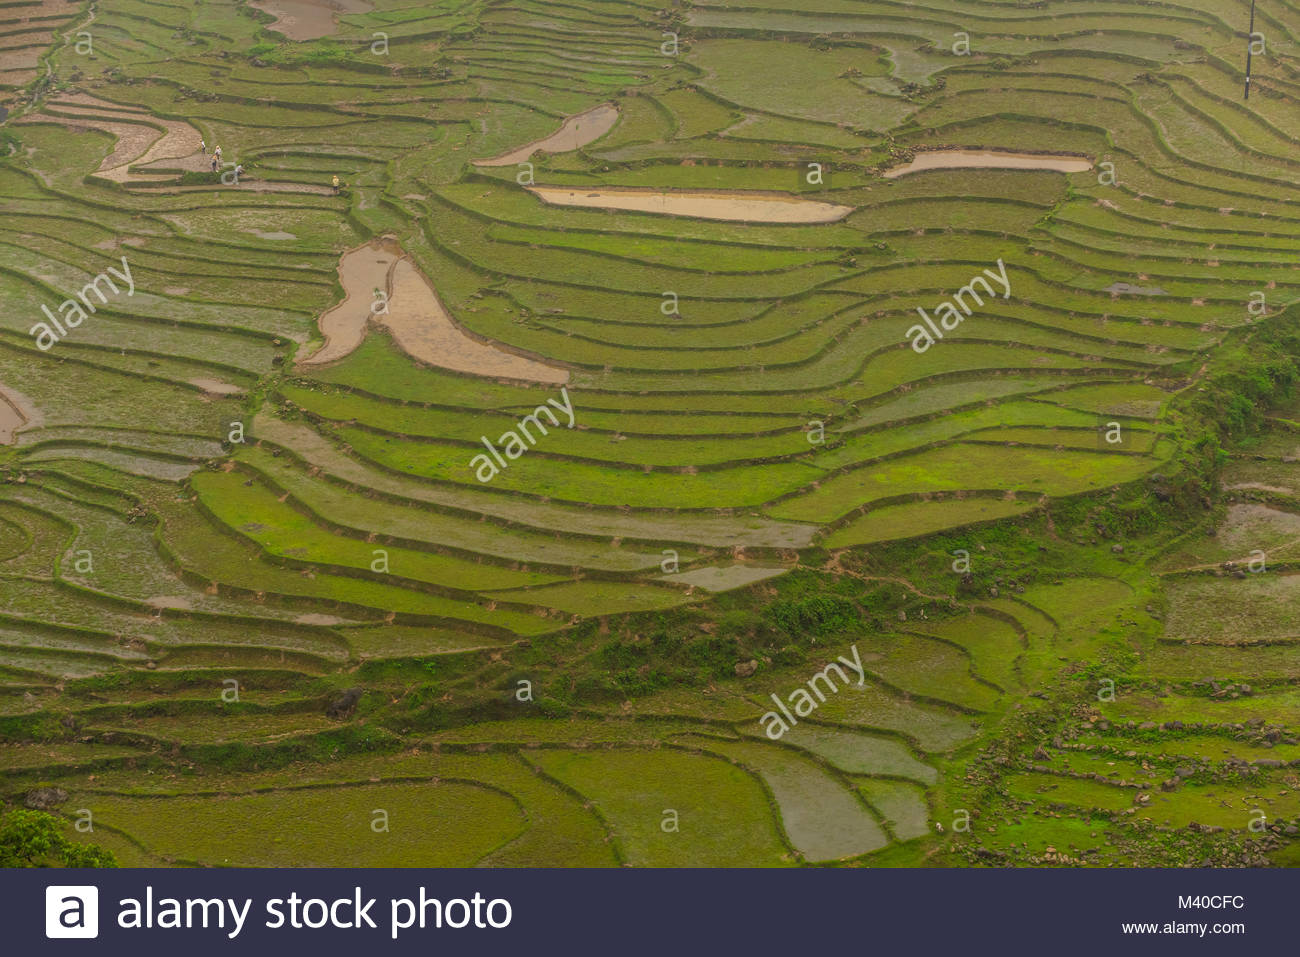 Rice terraces in the fog, Muong Hoa Valley, near Sapa, northern Vietnam. - Stock Image